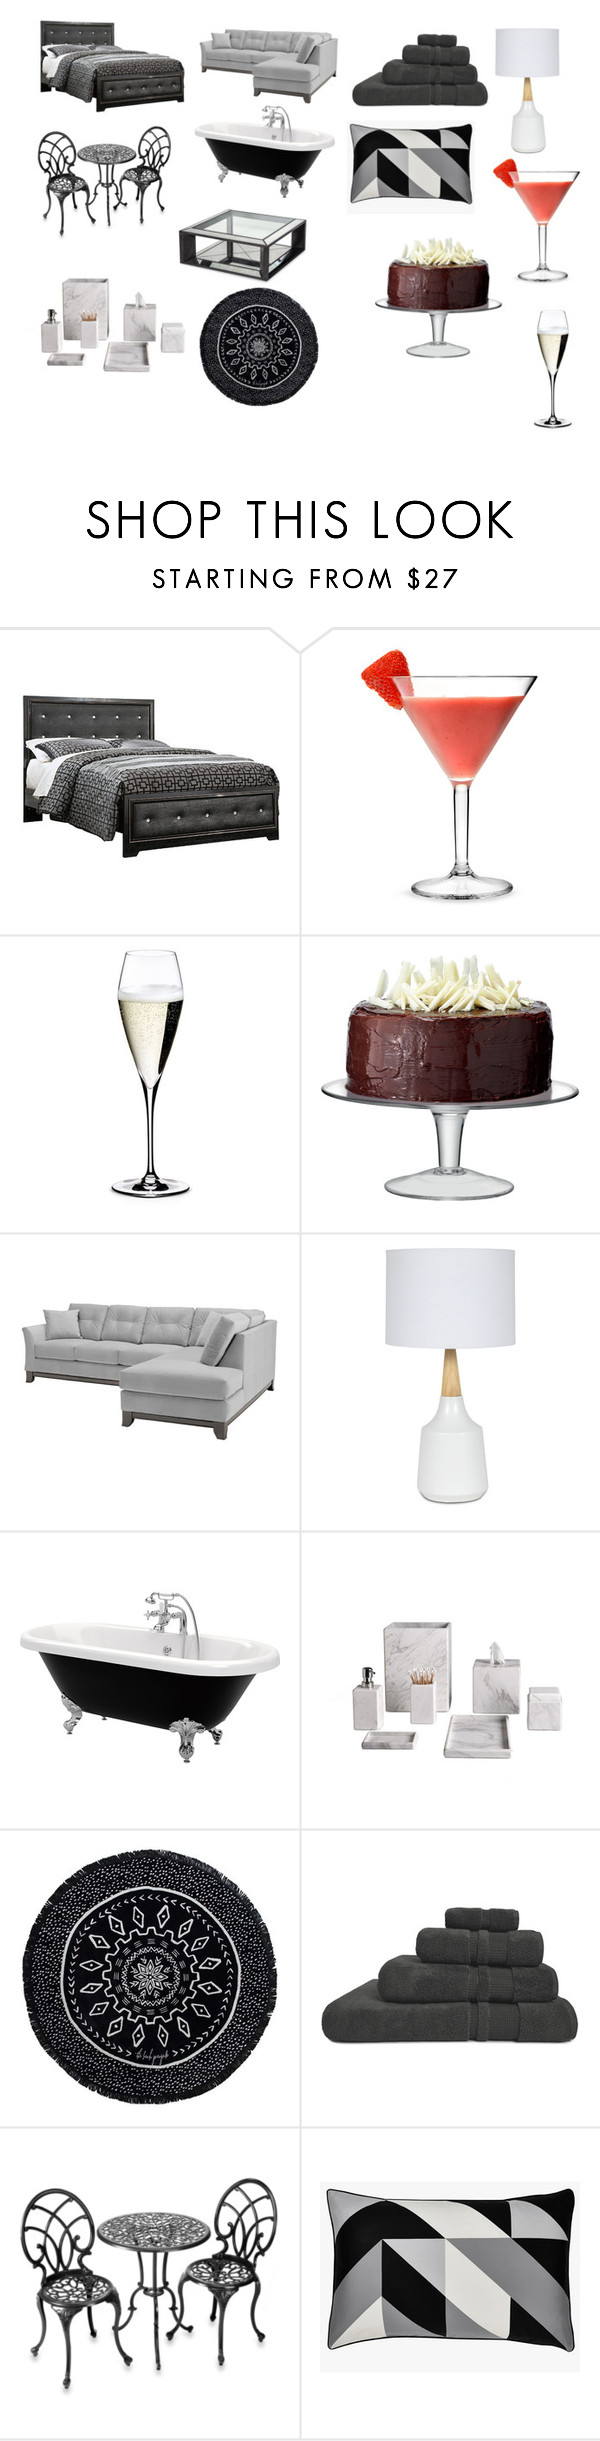 """Home Sweet Home"" by breezybrebre on Polyvore featuring interior, interiors, interior design, home, home decor, interior decorating, Riedel, LSA International, The Beach People and Hamam"